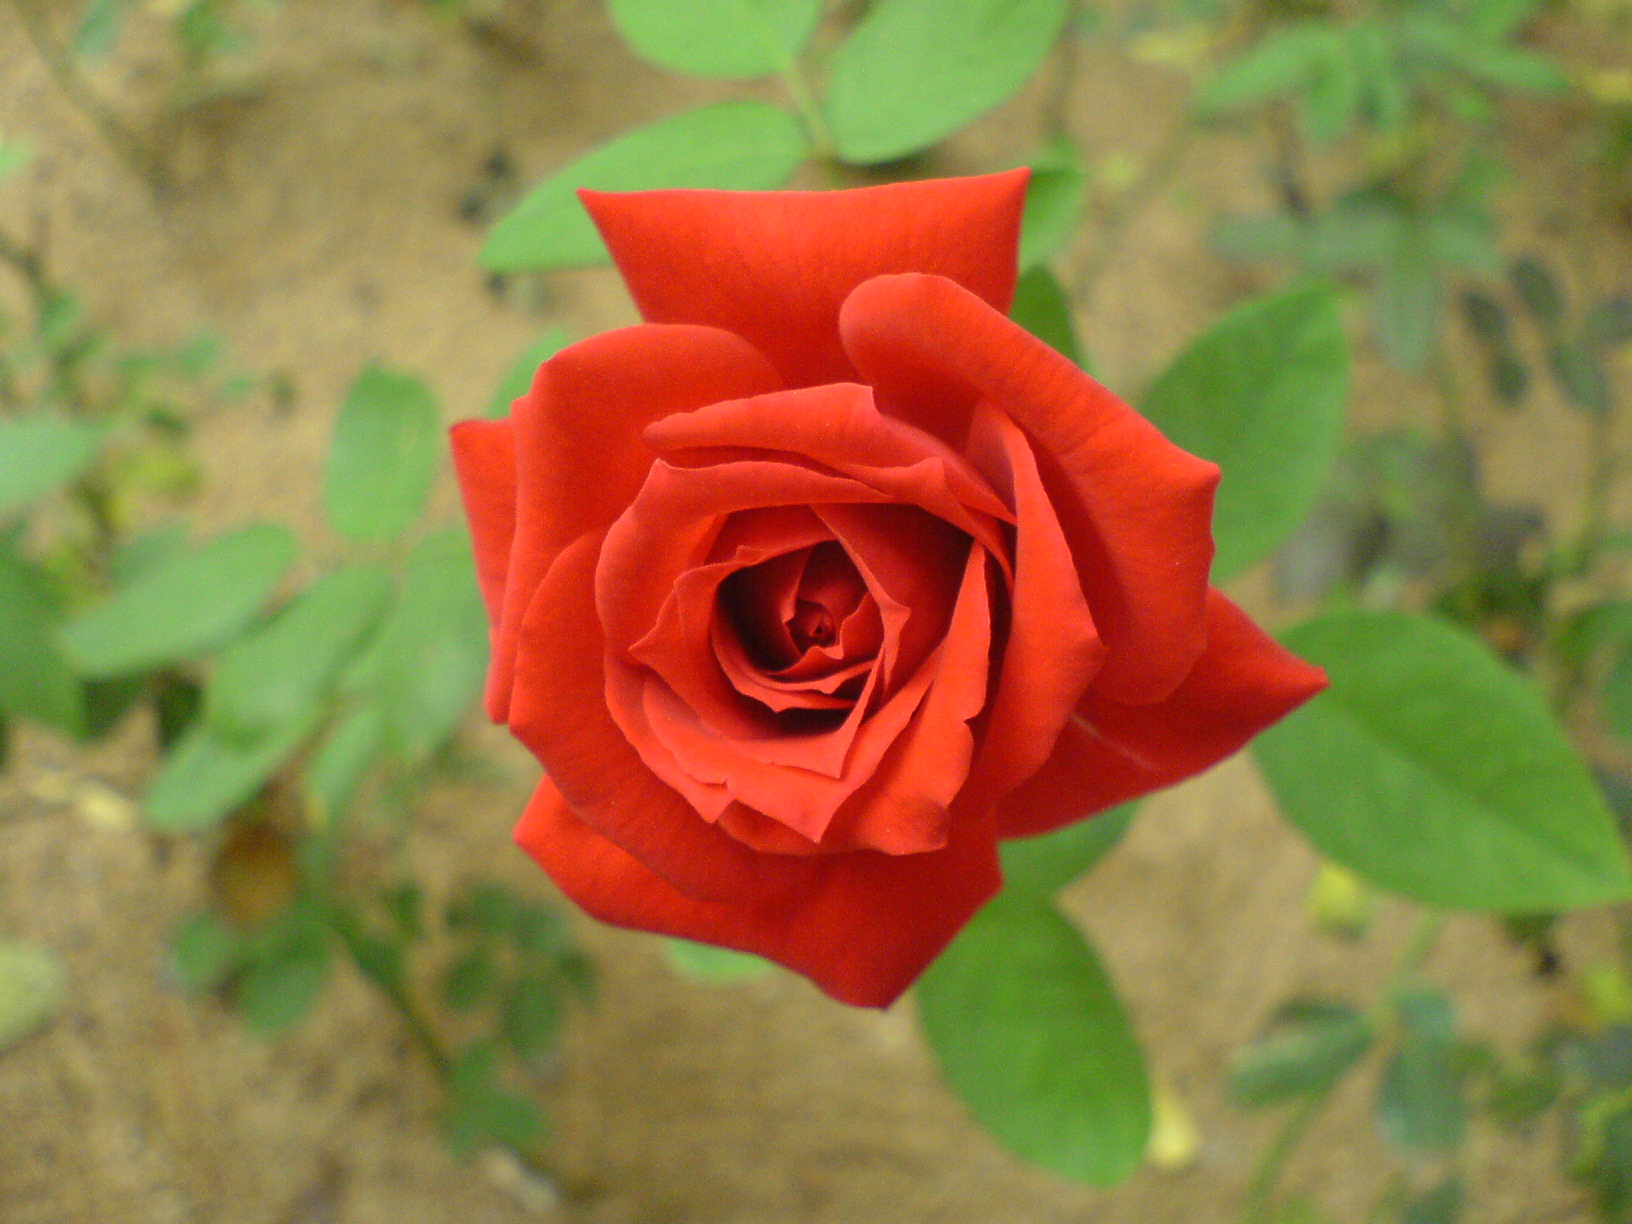 Description Red rose 00090.JPG